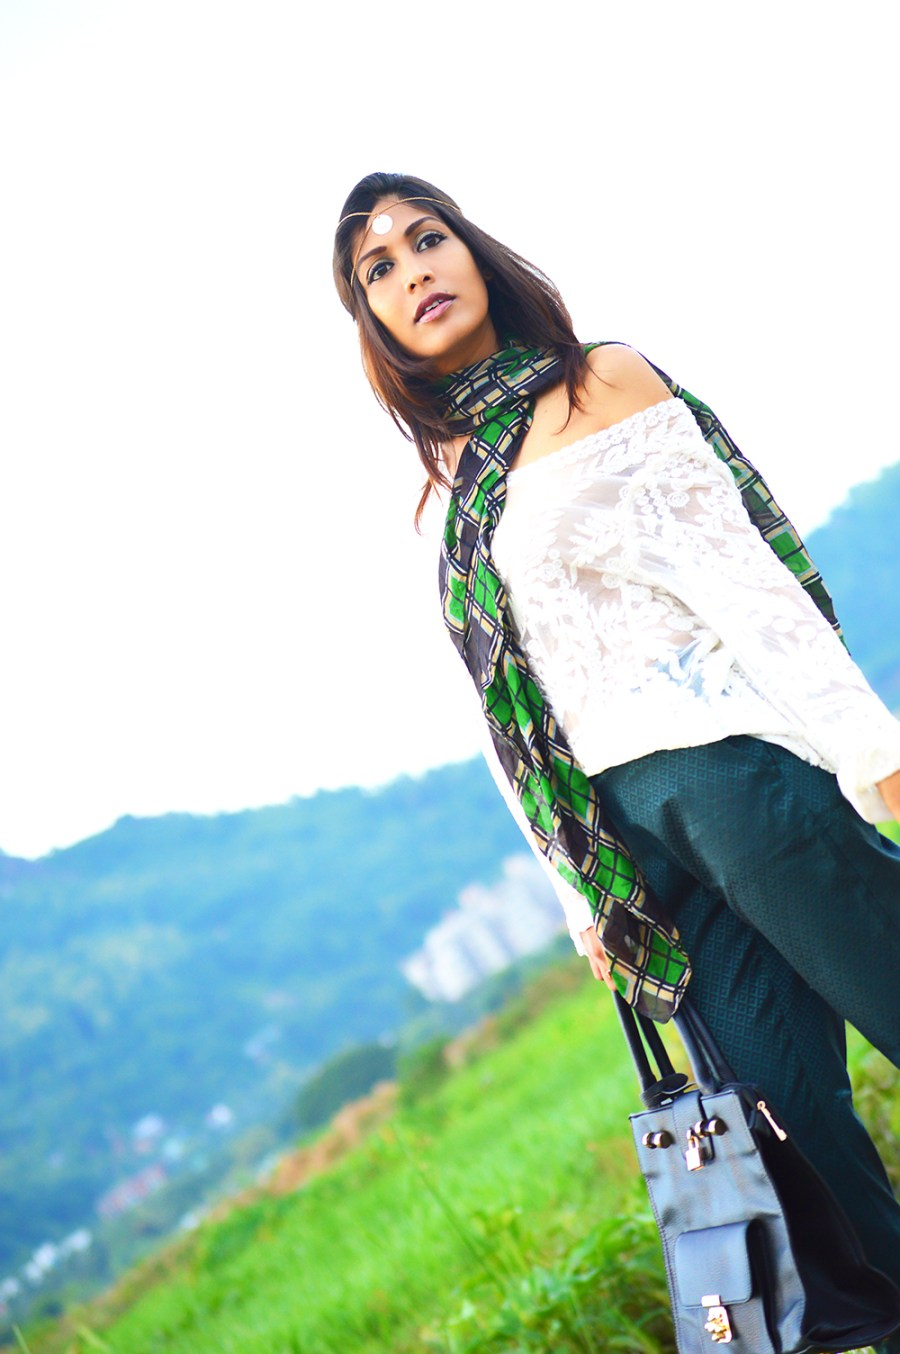 Fashion, Style, Street Style, Fashion Blogger, Fashion Photography, Indian Blogger, Lace Top, Green Trousers, Silk Scarf, Black Bag, Summer Fashion, Style Over Coffee, Pankaj Jyoti Barua Photography, Sarmistha Goswami, Street Style Photography-3